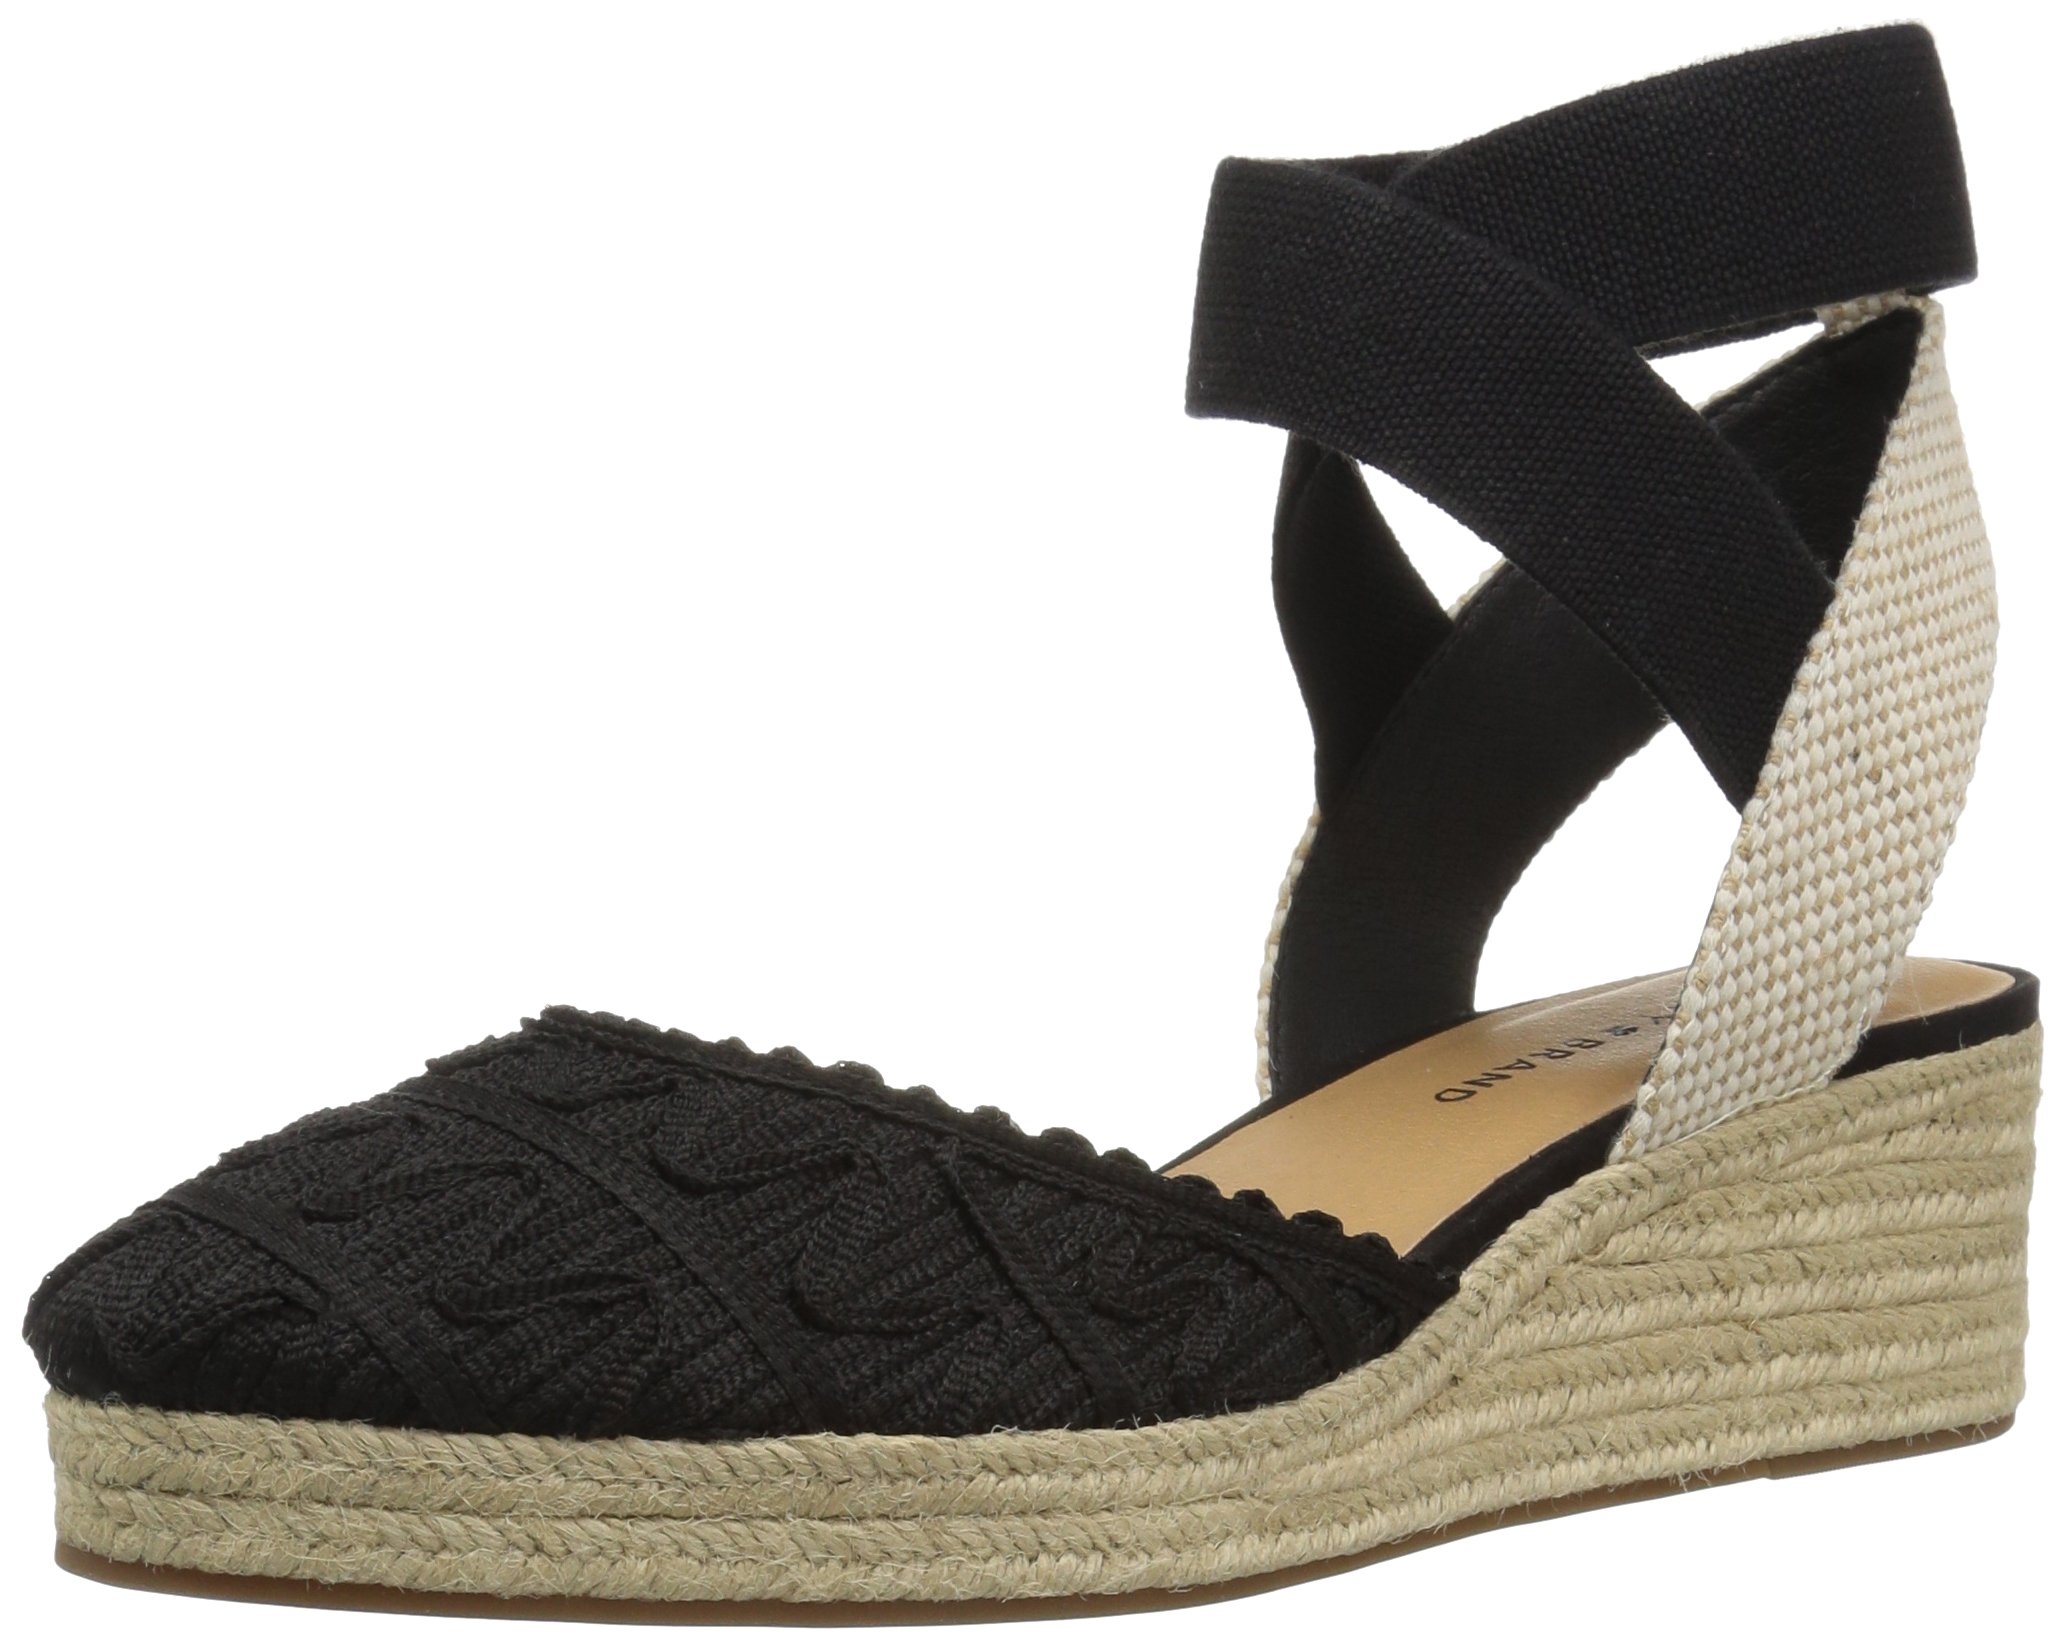 Lucky Brand Women's Luvinia Pump, Black, 7 M US